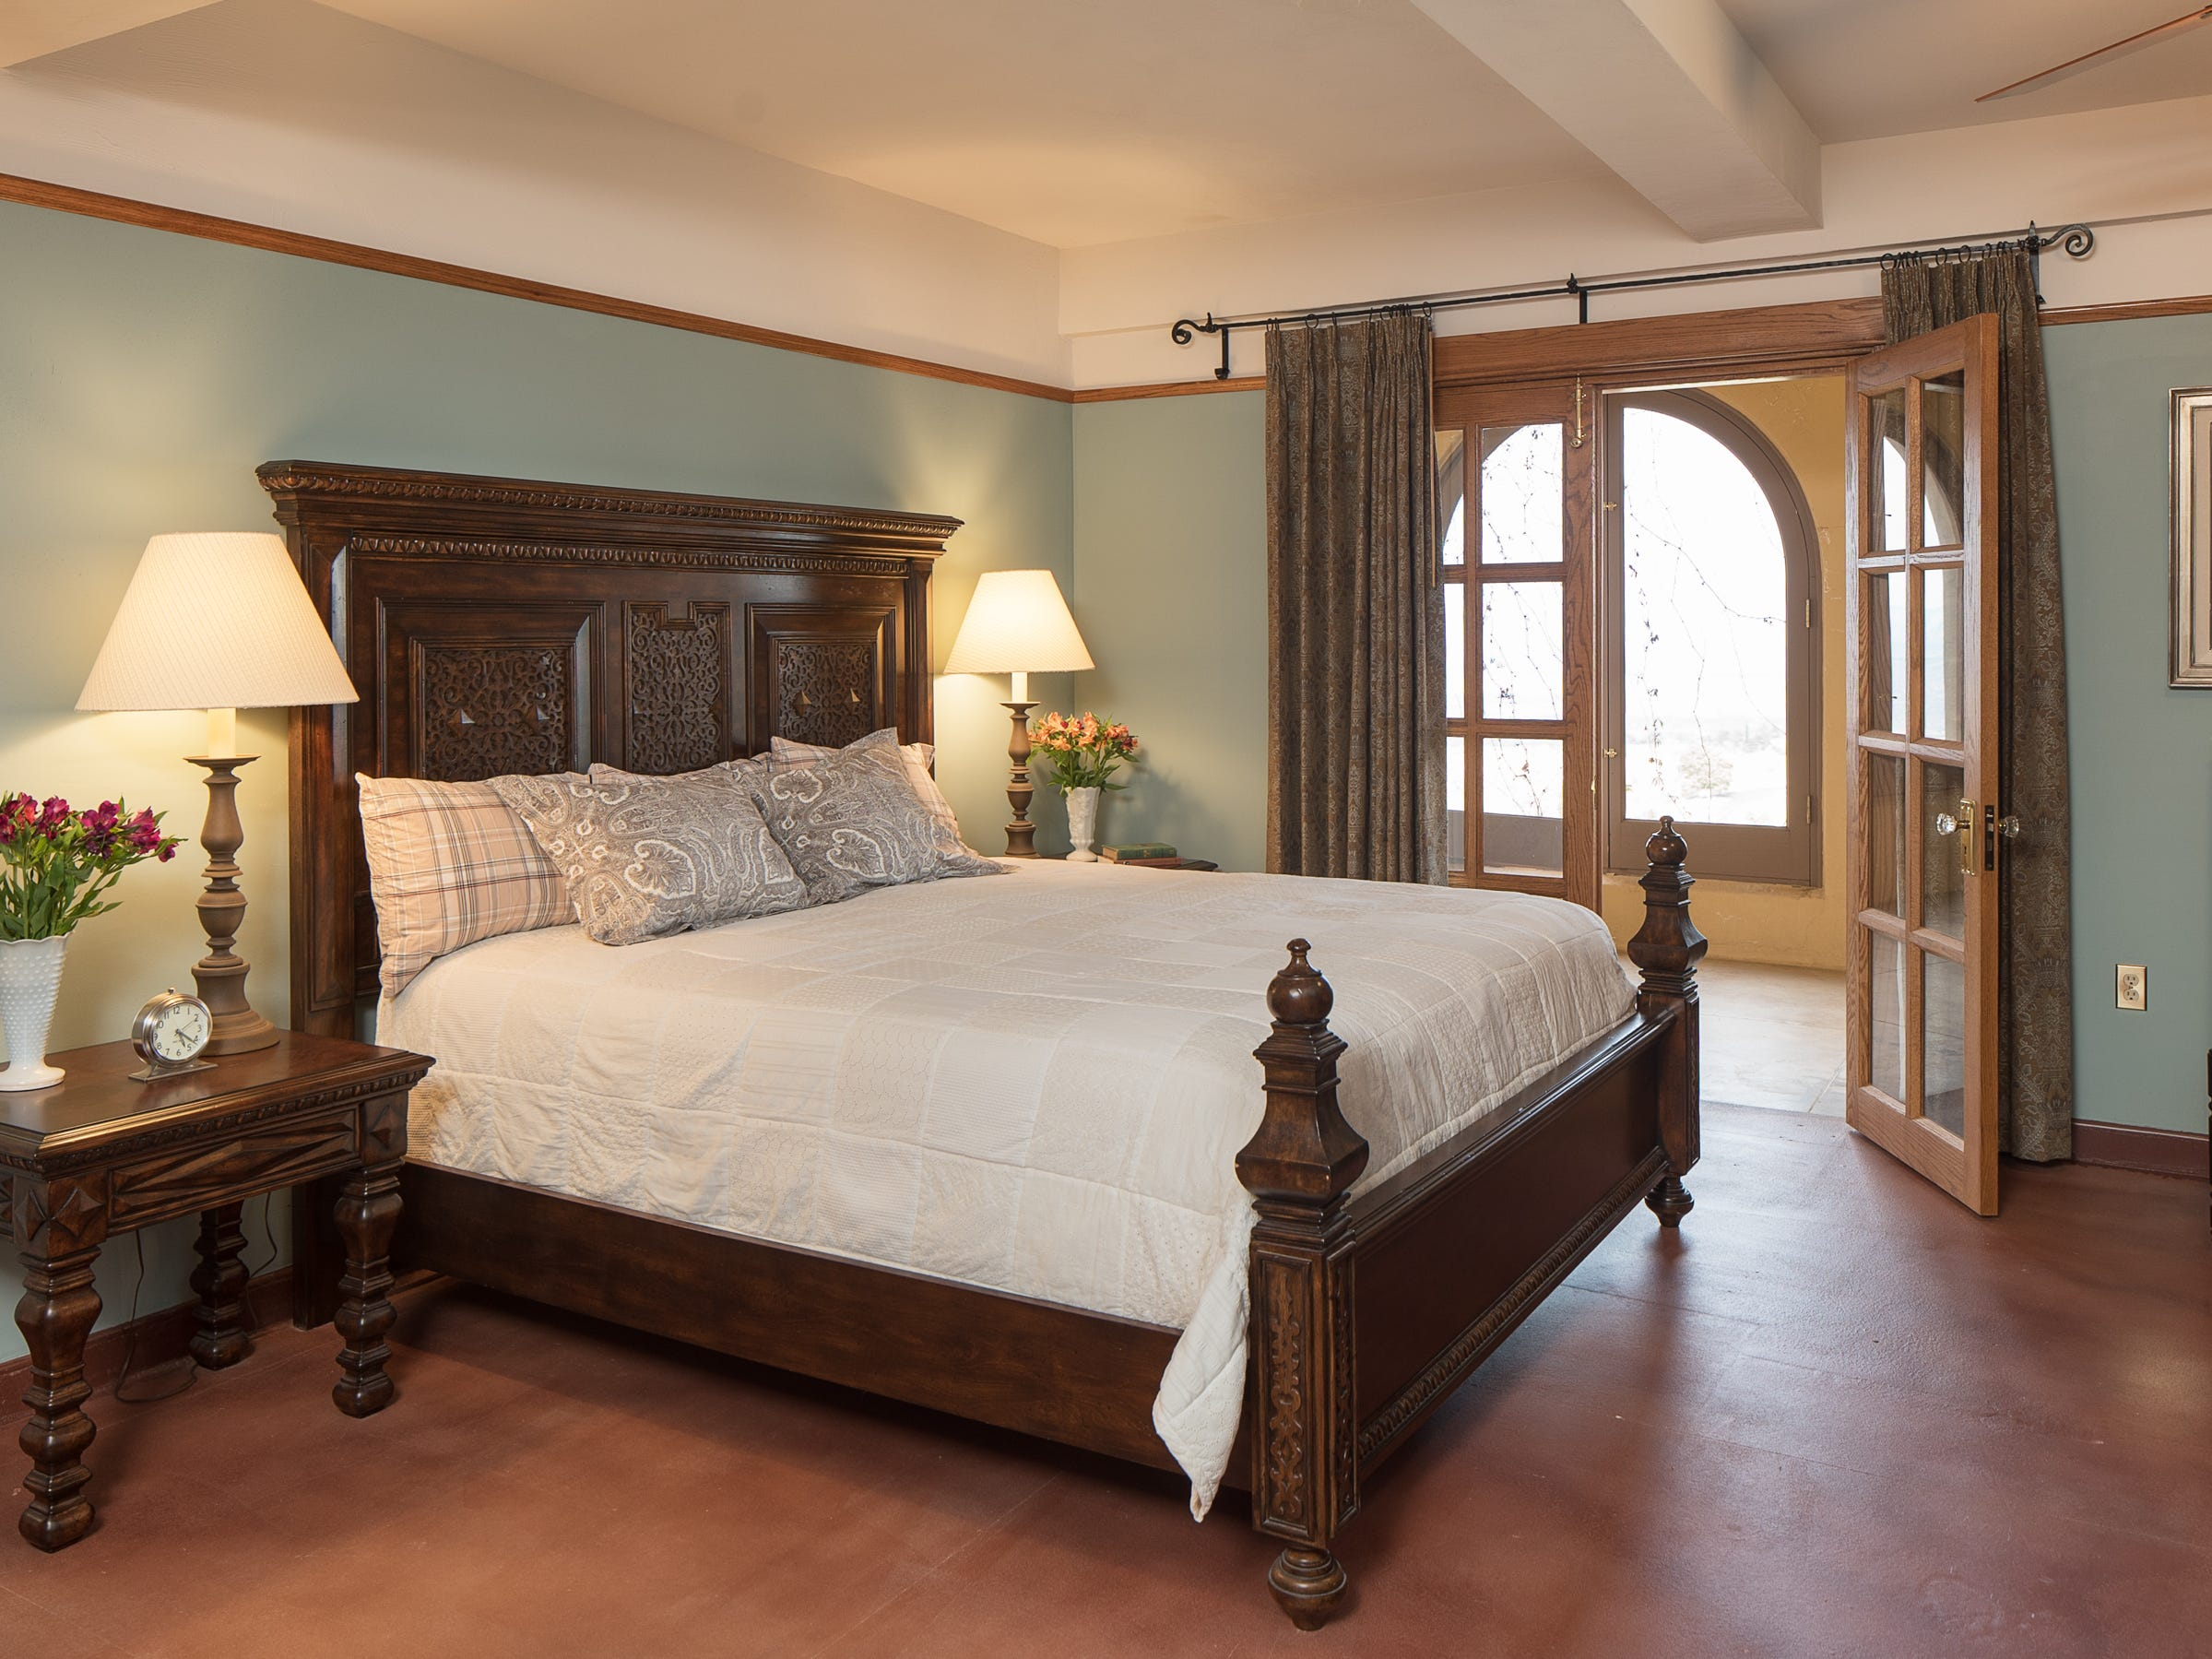 The King bedroom No. 1 is seen at the 100-year-old former Little Daisy Hotel in Jerome, which was later turned into a single-family home and is now on the market.